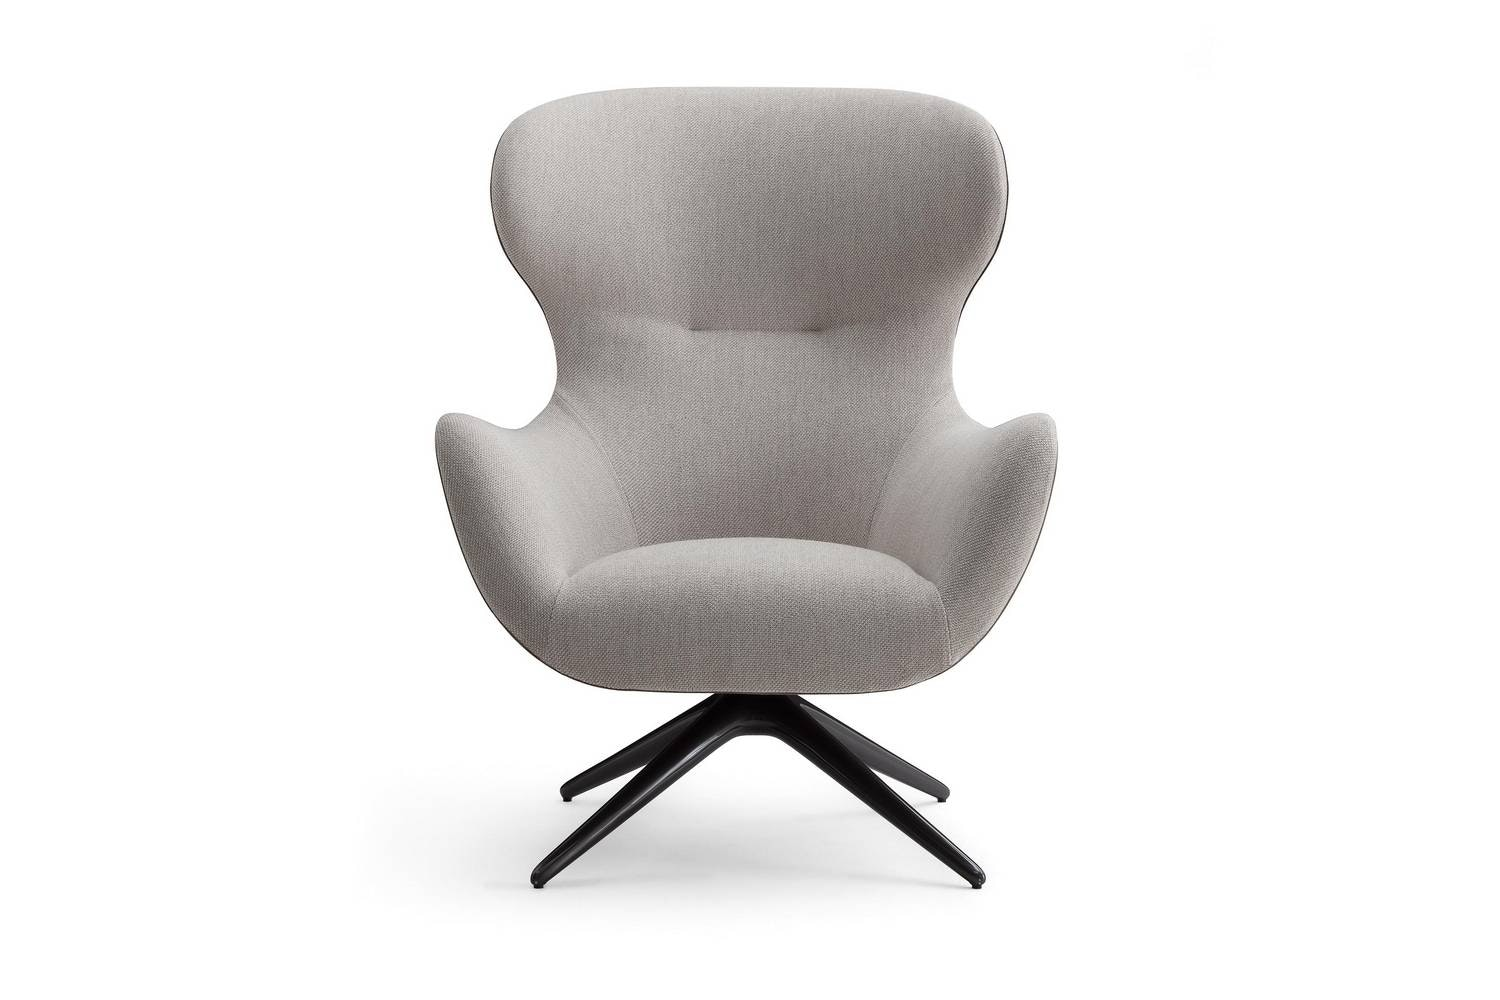 Mad Joker Armchair by Marcel Wanders for Poliform